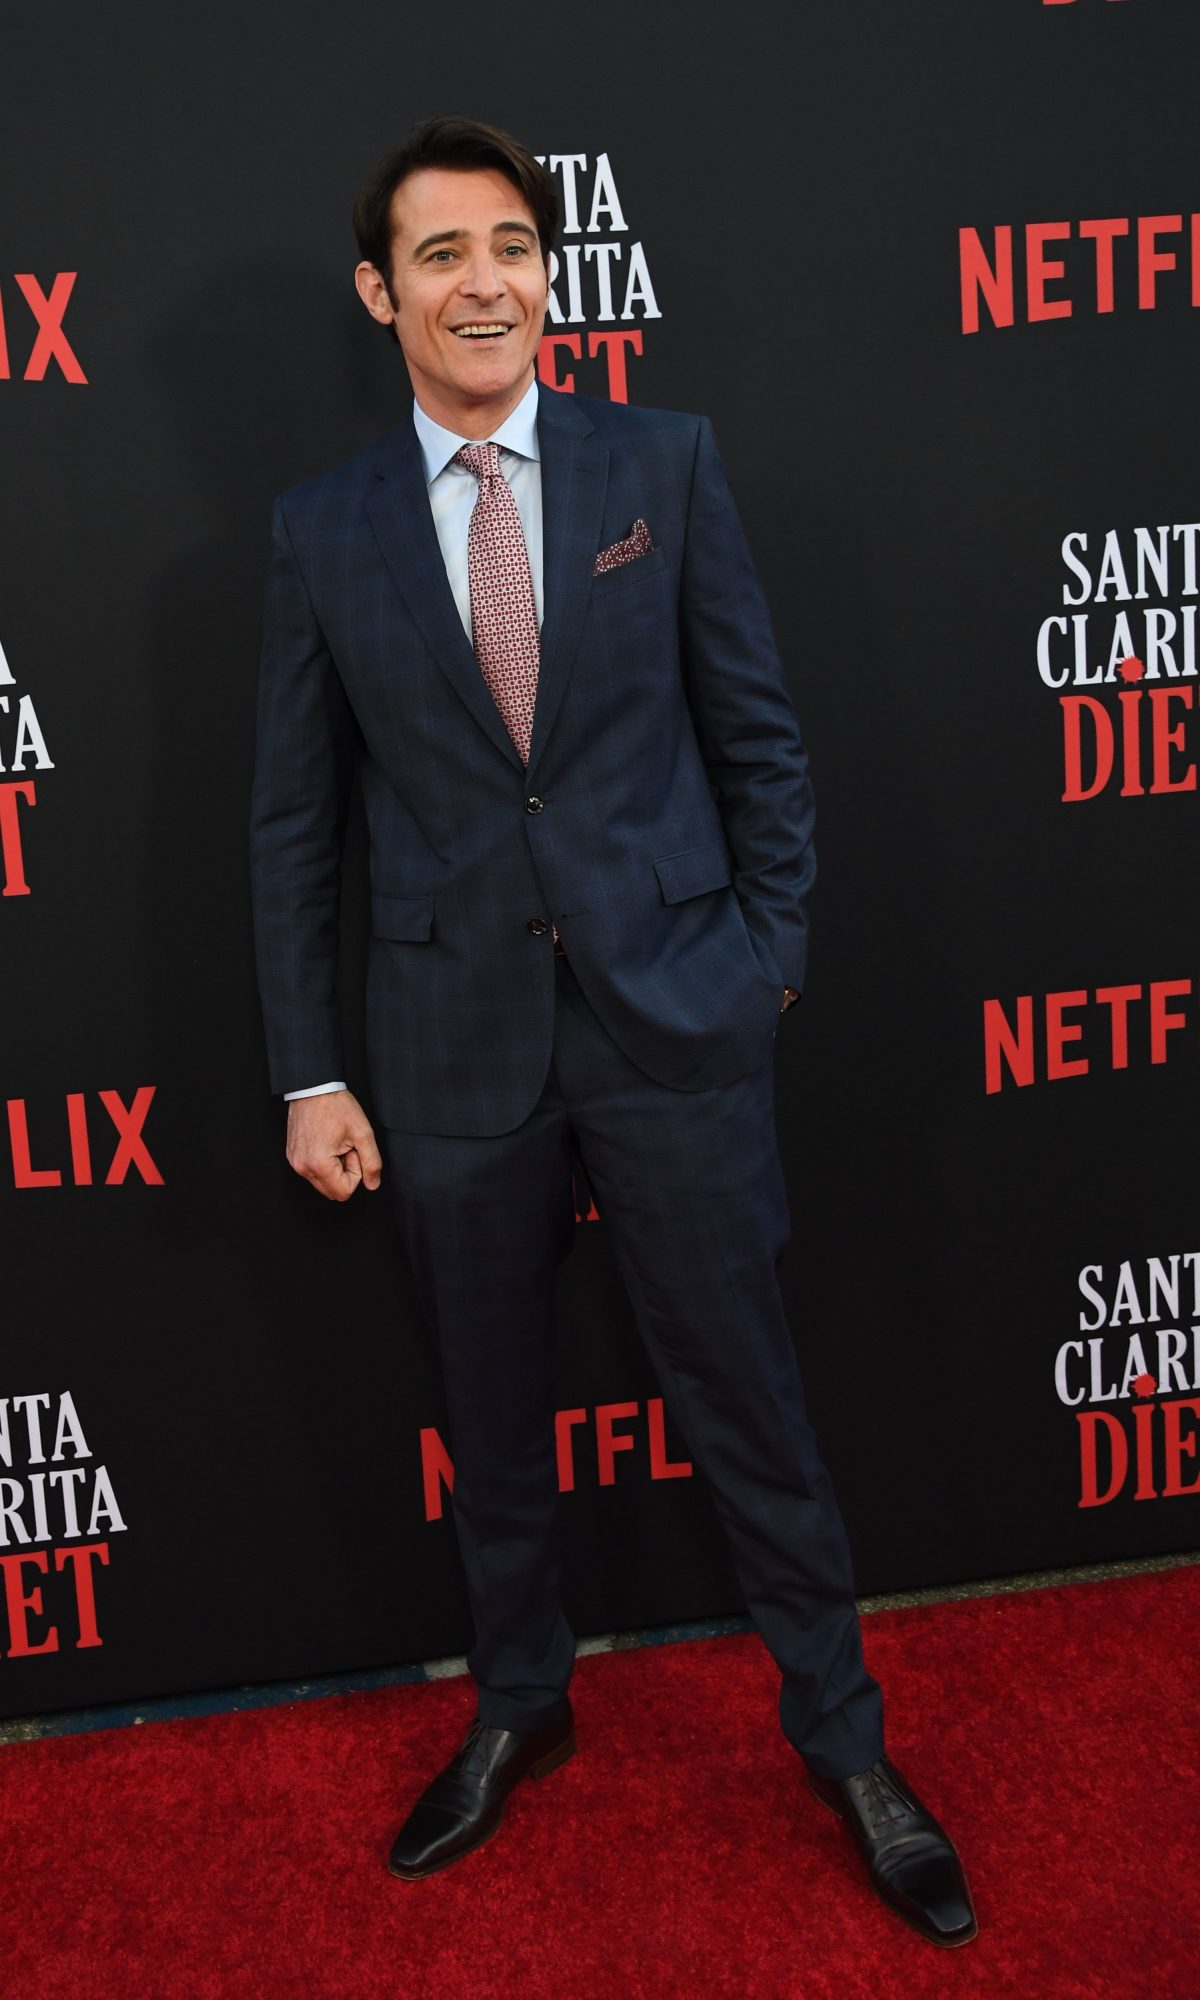 """US/Croatian actor Goran Visnjic attends the premiere of Netflix's """"Santa Clarita Diet"""" Season 3, at Hollywood Post 43 in Hollywood on March 28, 2019. (Photo by Robyn Beck / AFP)        (Photo credit should read ROBYN BECK/AFP/Getty Images)"""